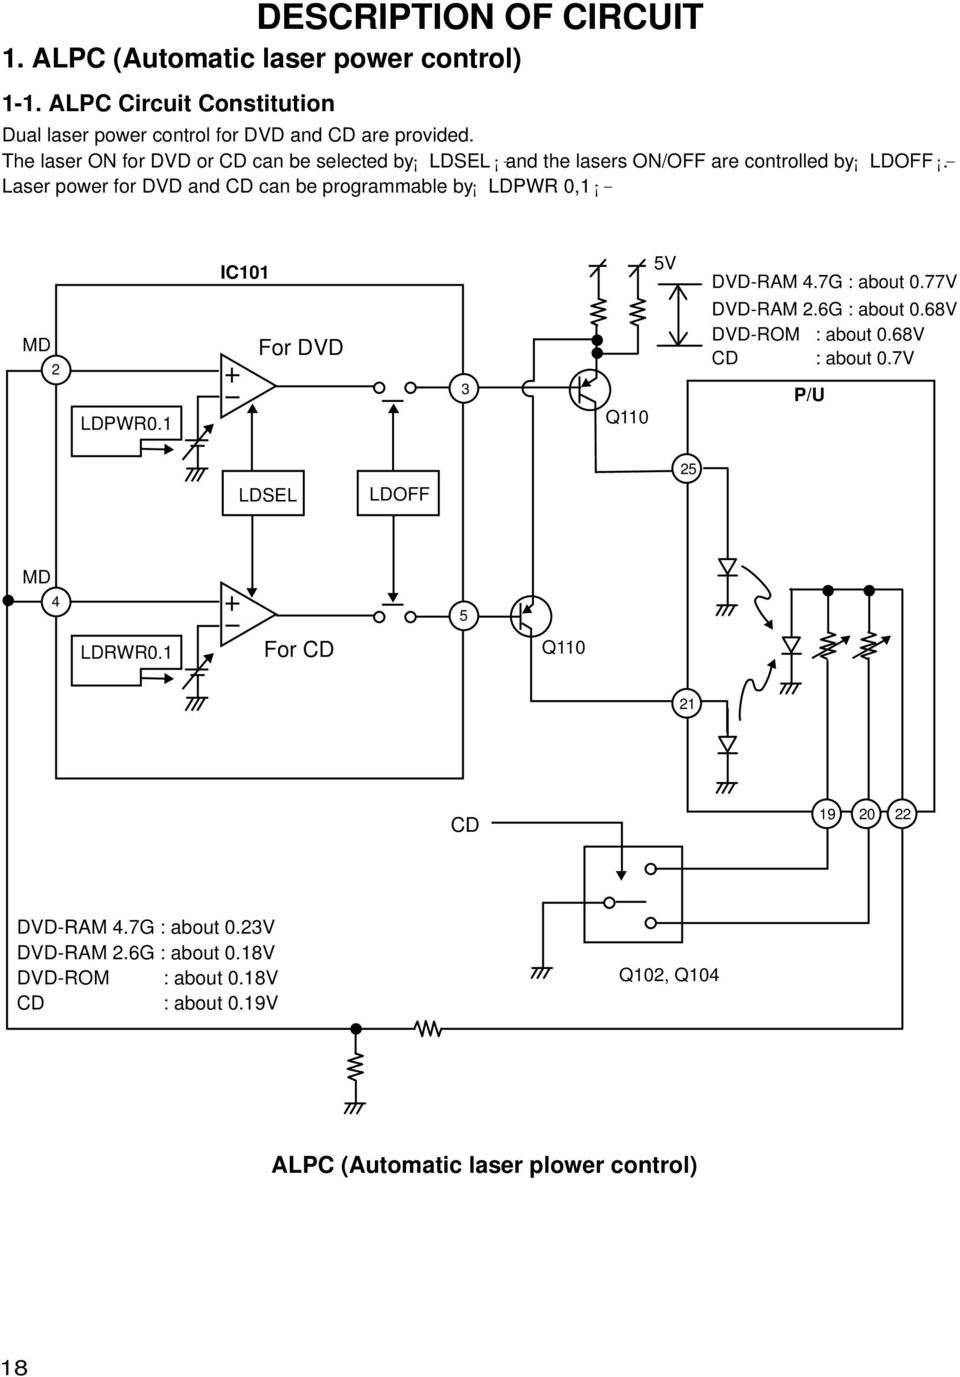 Dvd Rom Drive S E Rvice Manual Pdf Circuit Diagram For Servo Control Laser Power And Cd Can Be Programmable By Ldpwr 0 Ic0 V